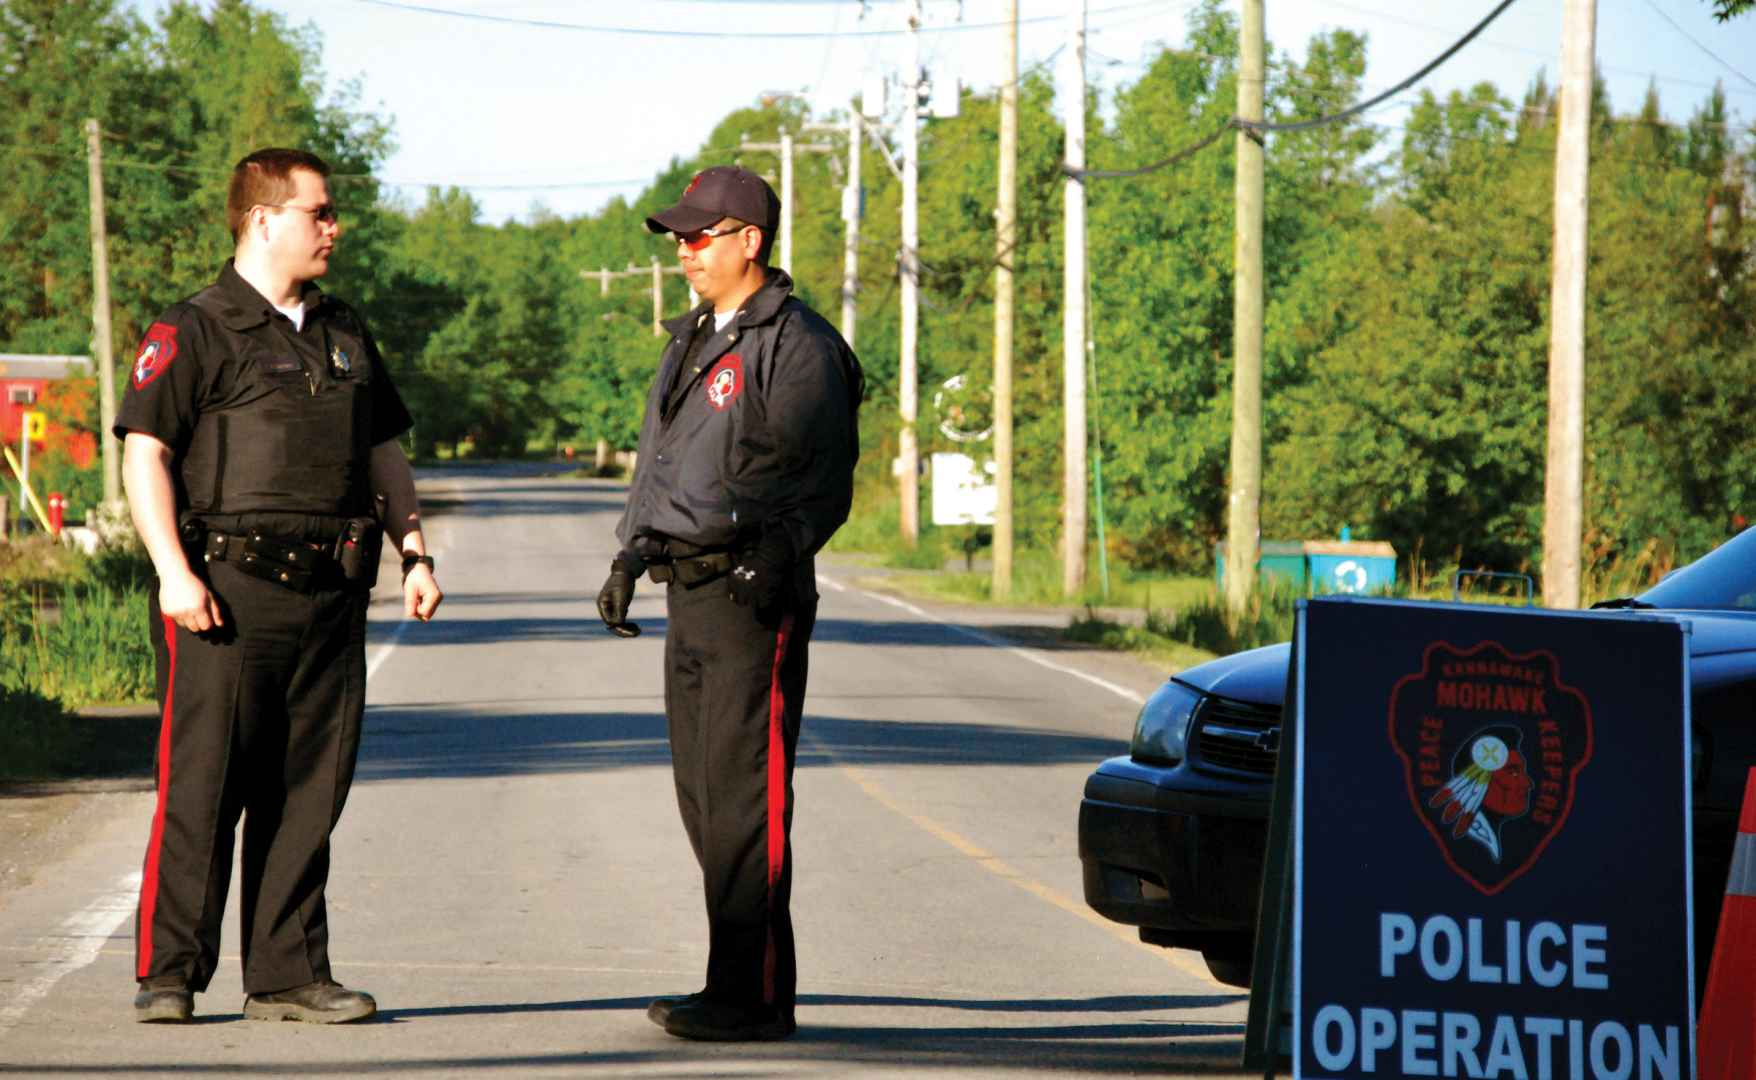 Peacekeepers Kyle Zachary and Forrest Horn stop traffic at Barnes Road the morning of the province-wide Operation Machine raid. (Steve Bonspiel, The Eastern Door)